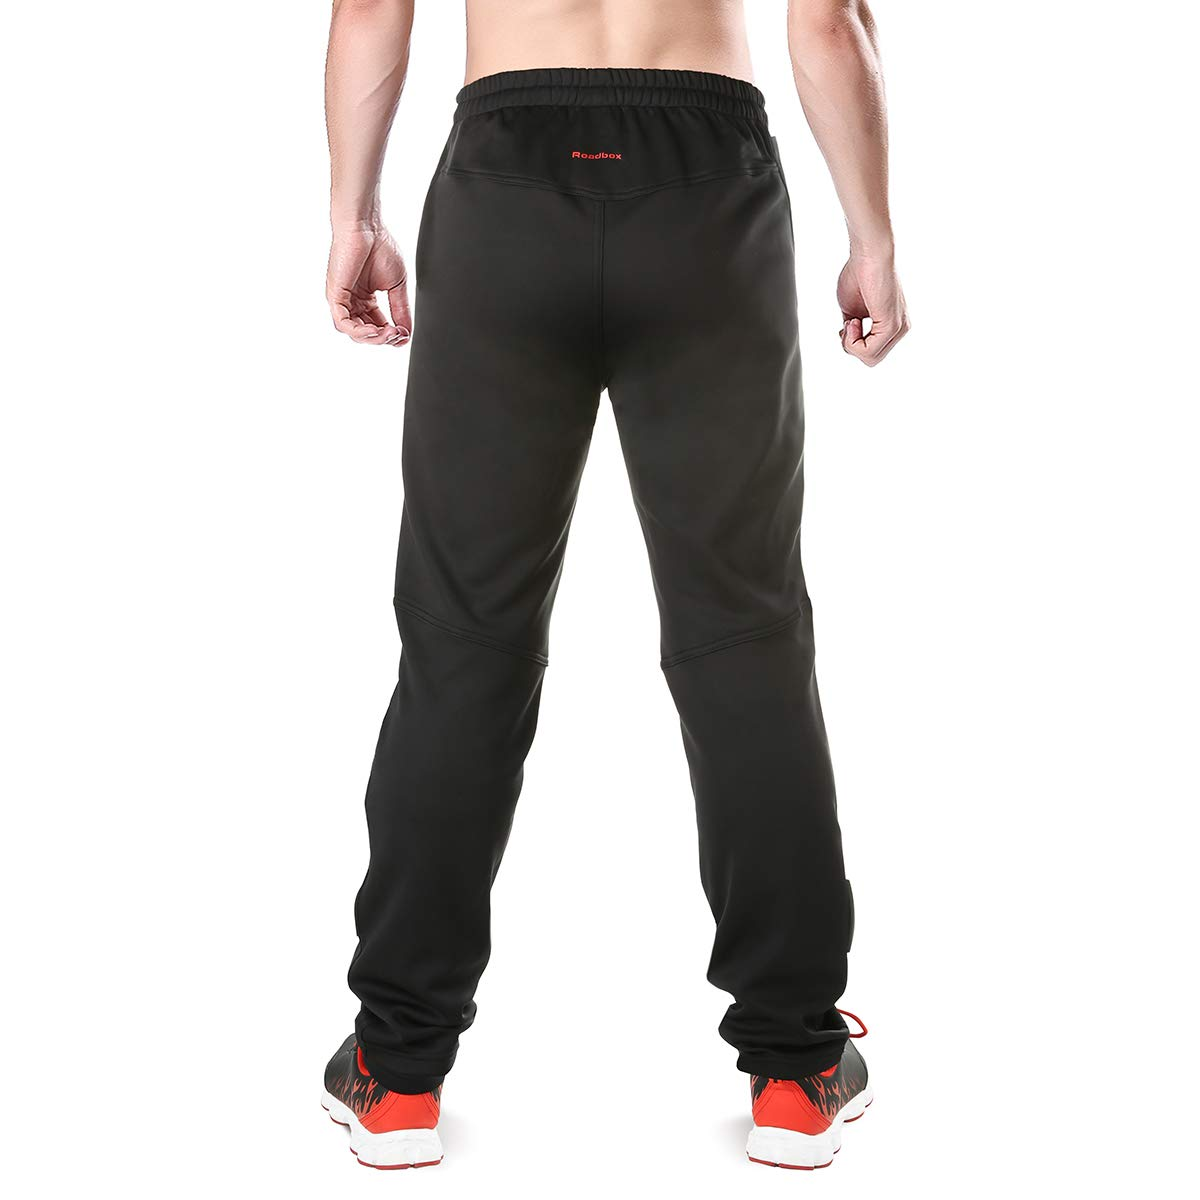 More Mile 2 In 1 Baggy Cycle Short Warm And Windproof Sporting Goods Clothing, Shoes & Accessories